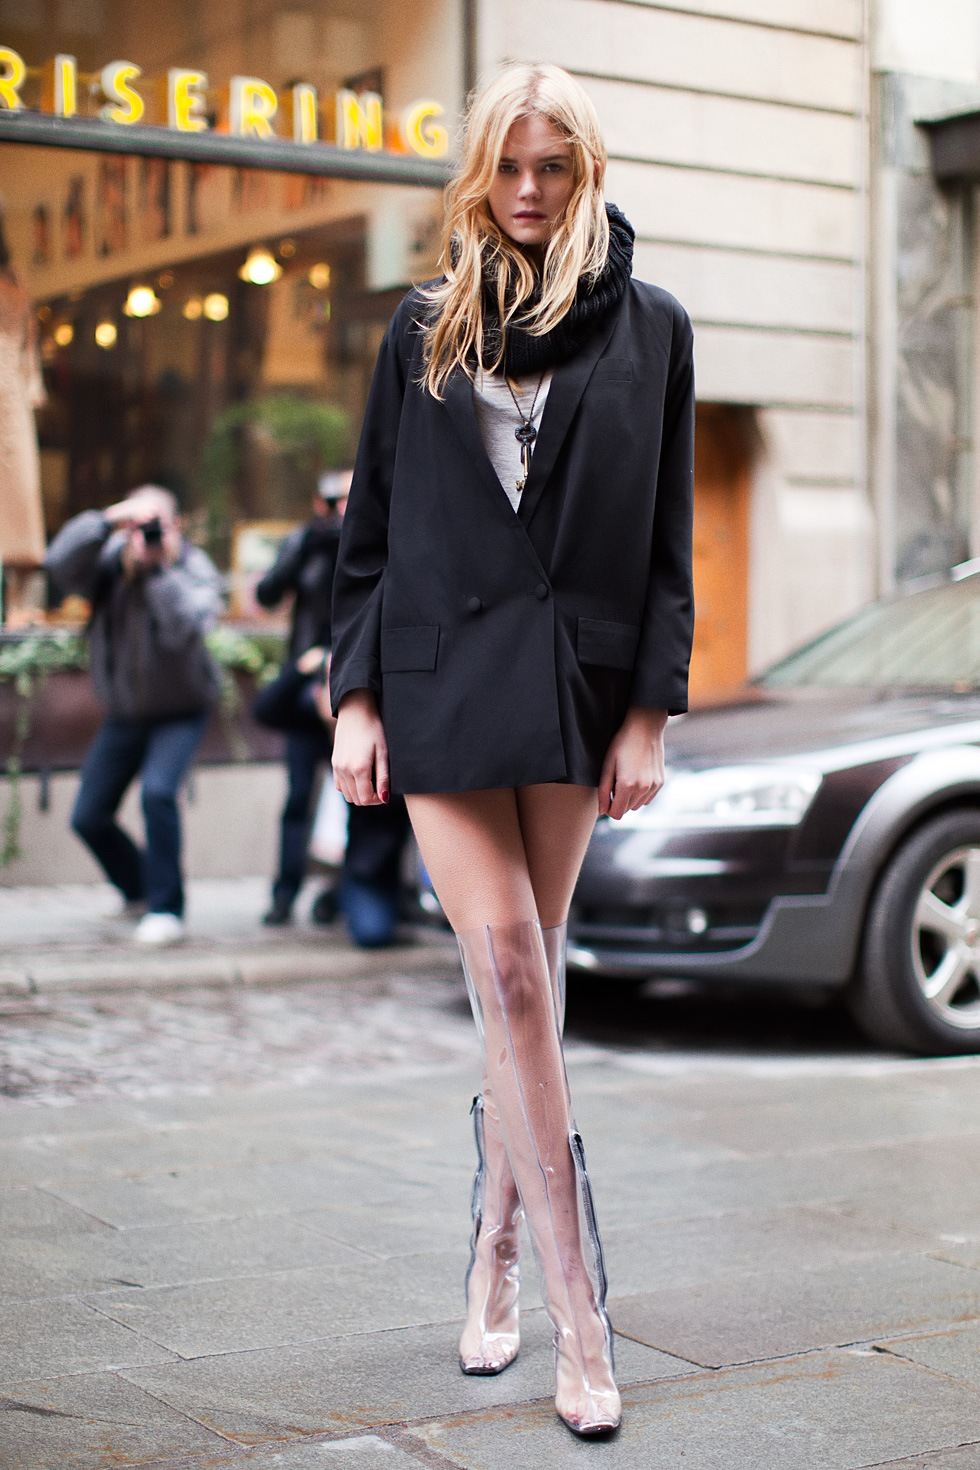 Model Street Style - Men Blazer & Transparent High Boots